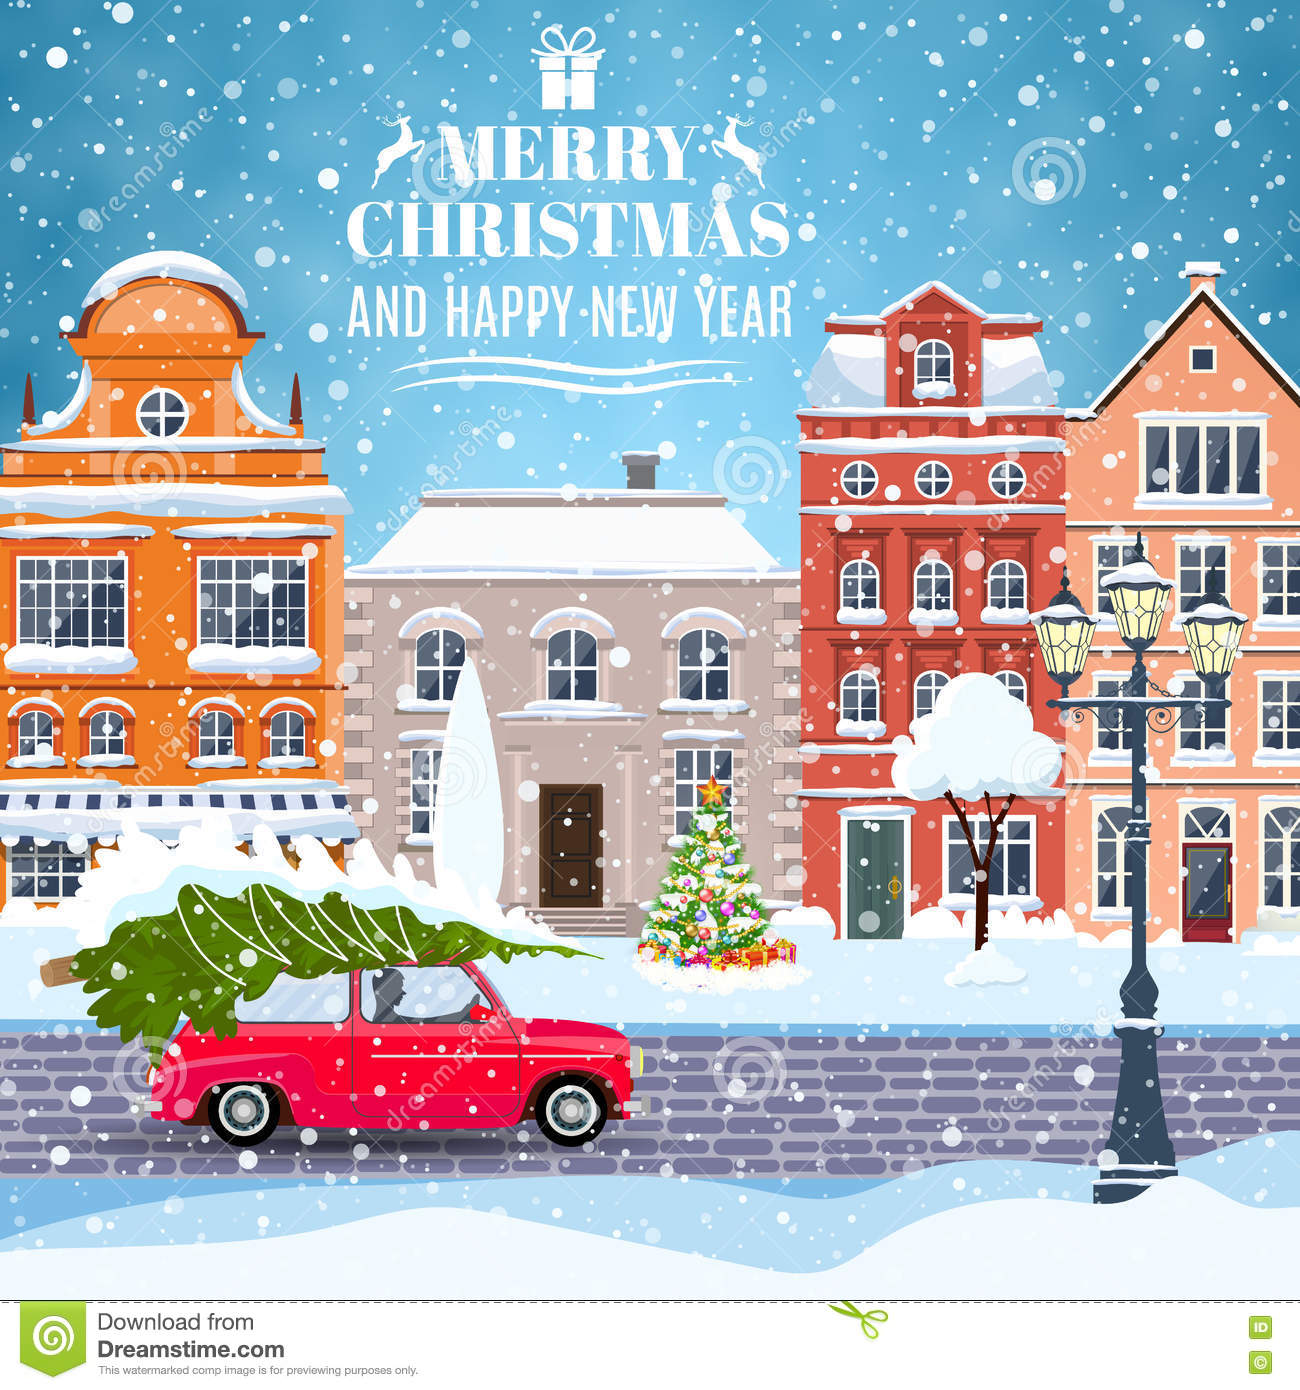 Happy New Year And Merry Christmas Winter Old Town Street With Tree Car Concept For Greeting Postal Card Invitation Template